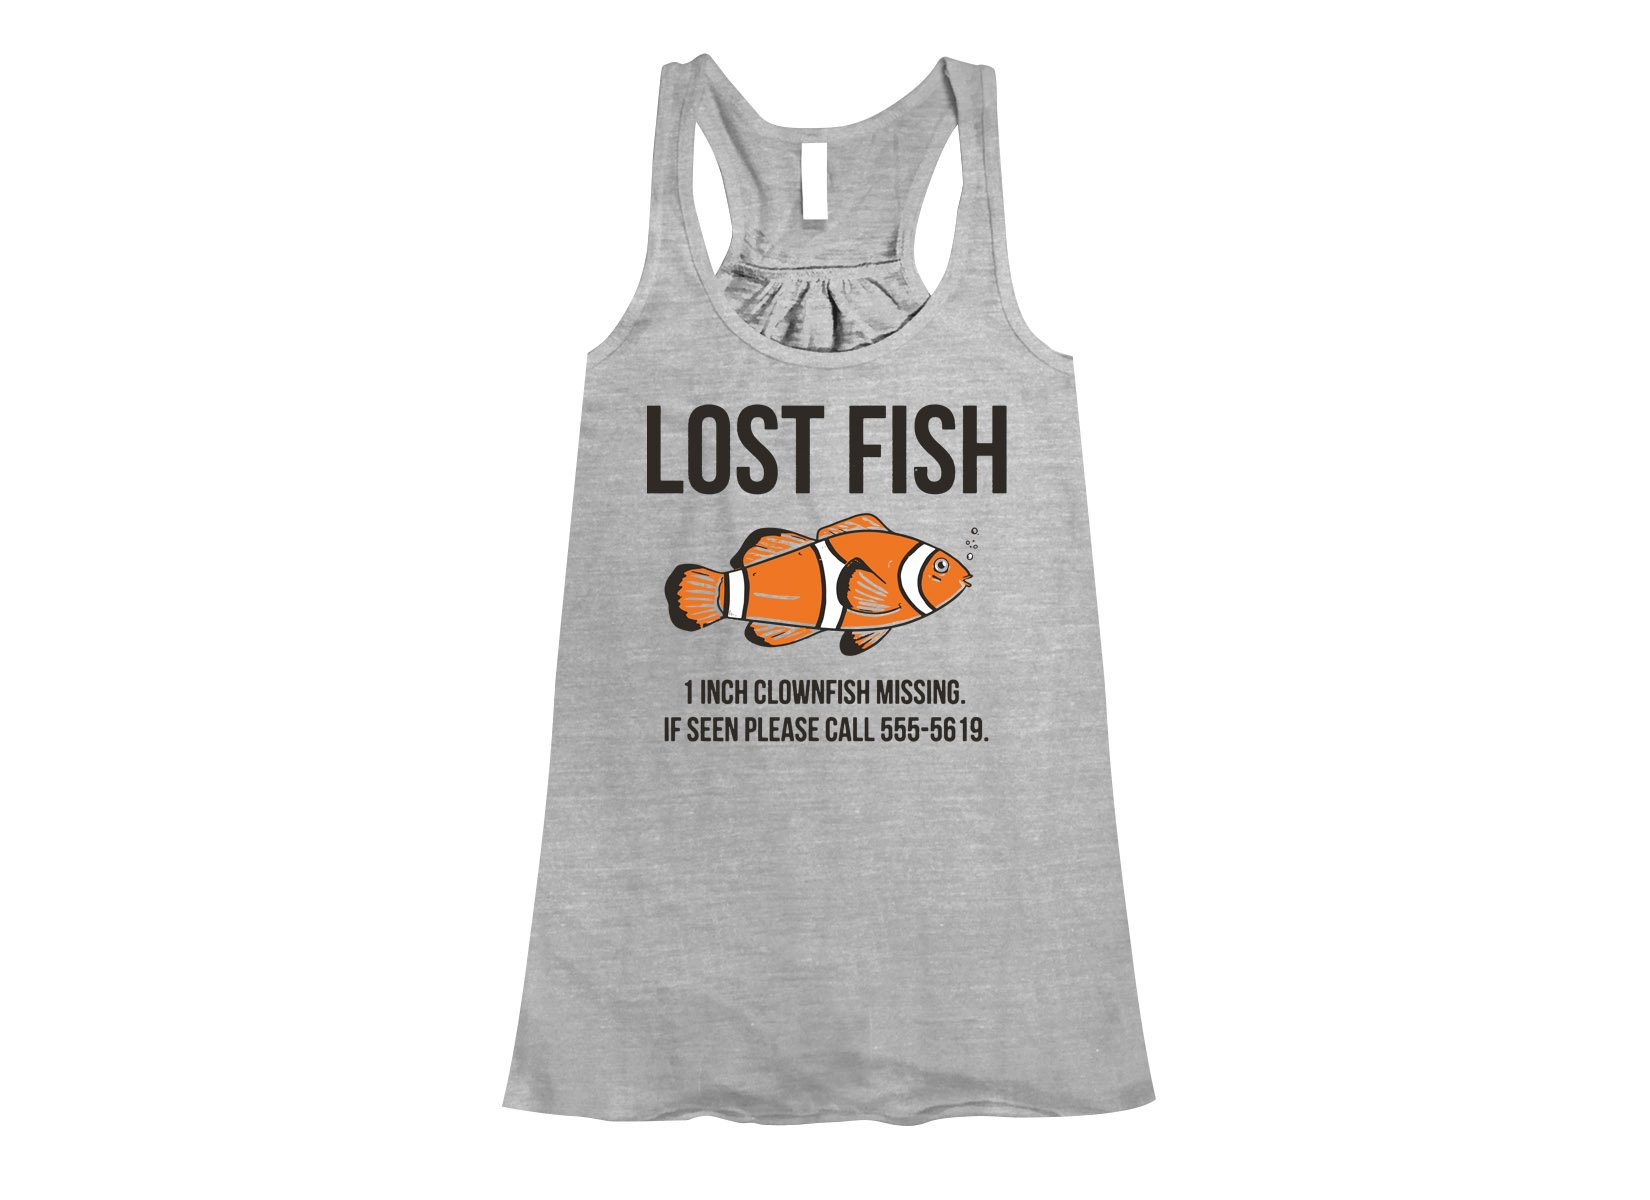 Lost Fish on Womens Tanks T-Shirt